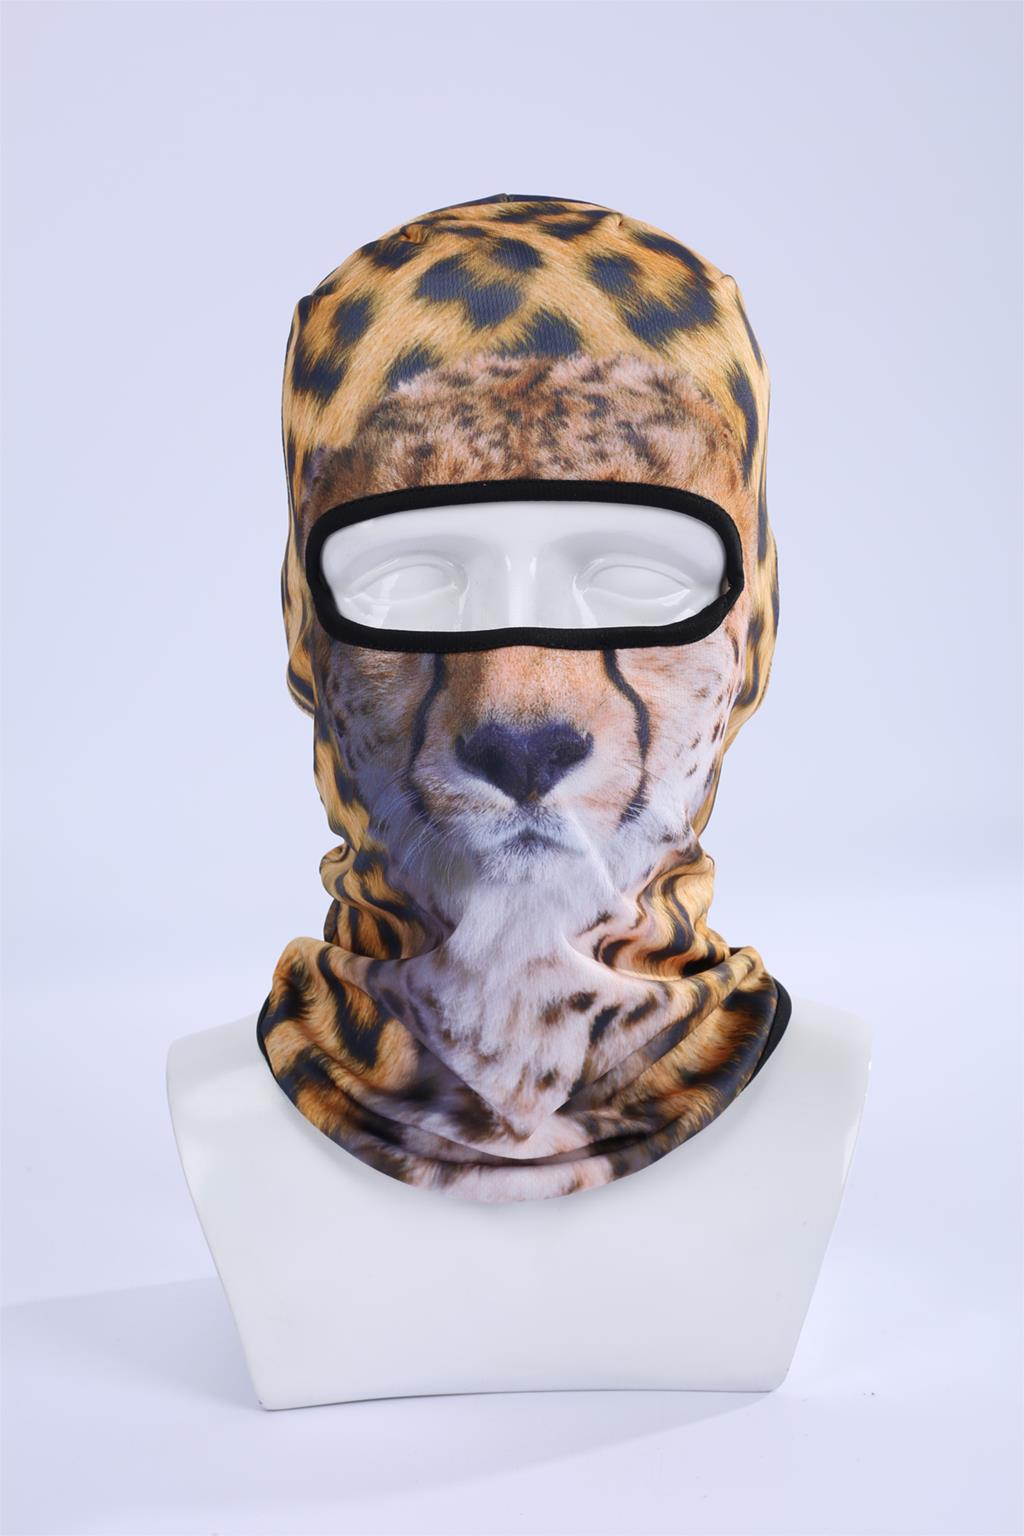 Hot Sale 2017 3D Leopard Animal Outdoor Sports Bicycle Cycling Head Ski Masks Beanie Hat Balaclava Uv Full Face Mask Bbb02 women beanie new hot sale 3d zebra animal hood hat balaclava full face mask outdoor sports bicycle cycling ski motorcycle masks